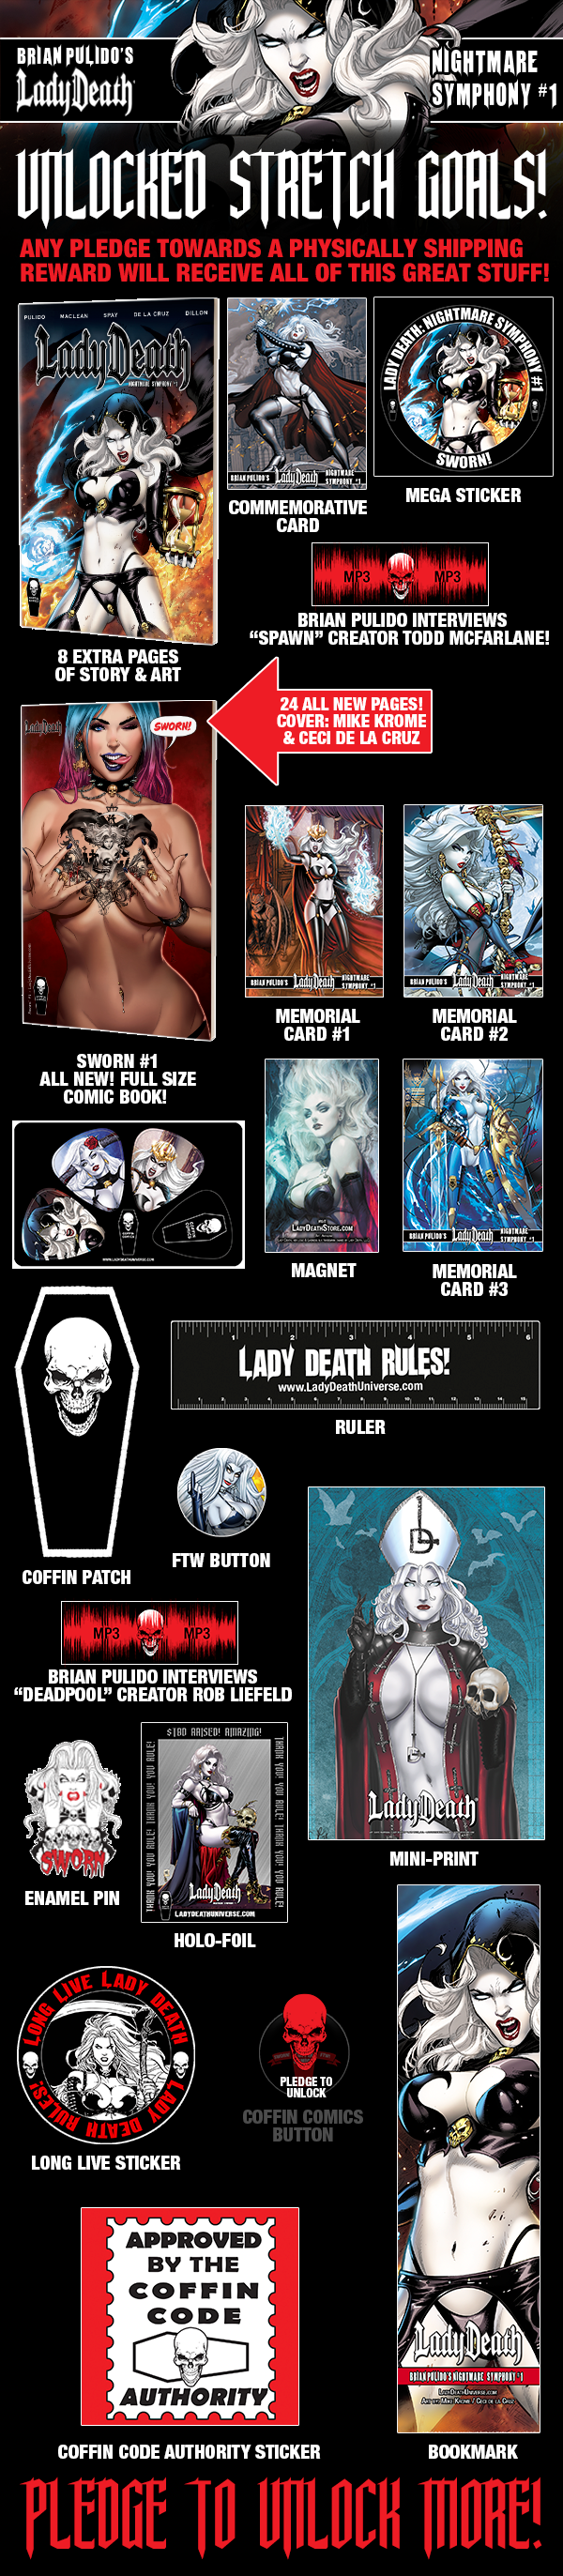 All stretch goal incentives unlocked to $250,000!